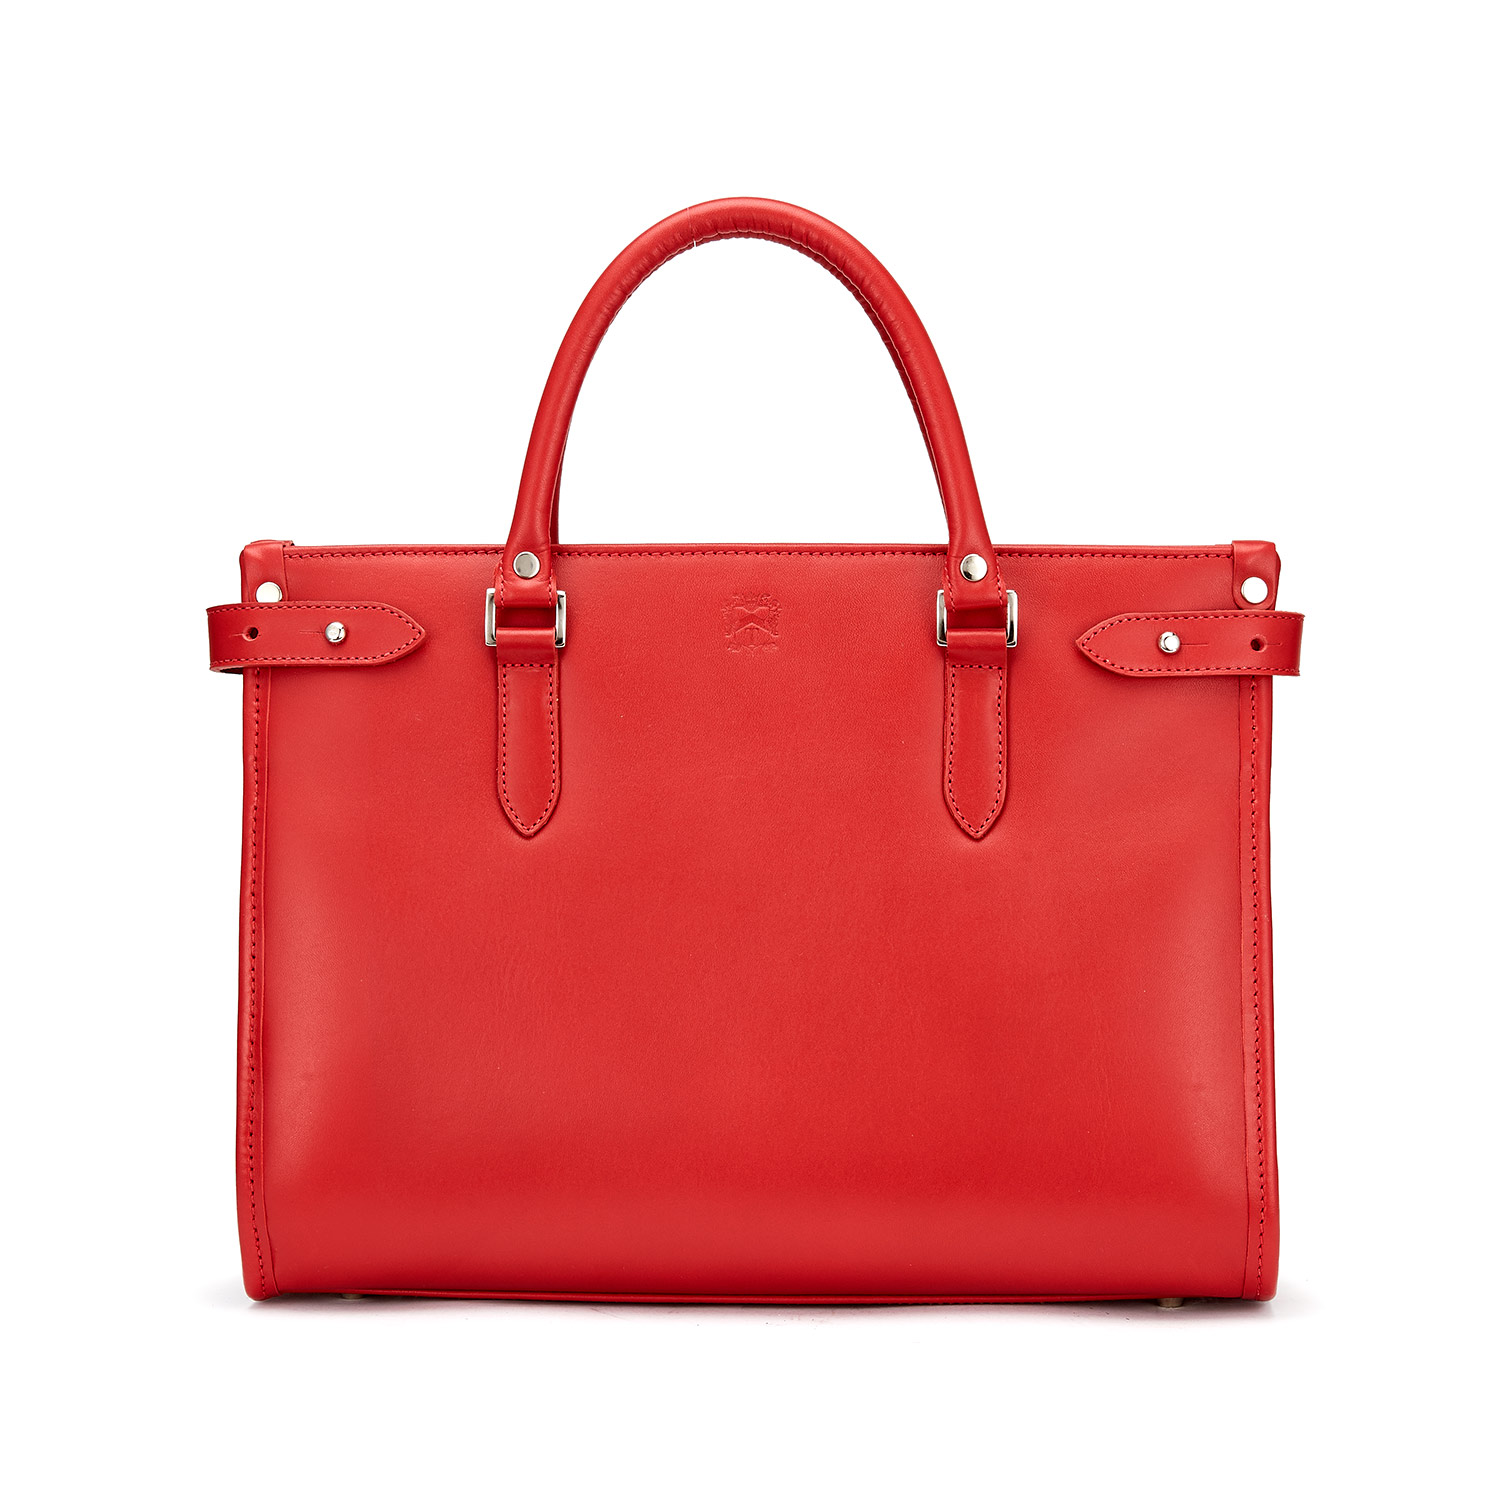 Tusting Kimbolton Leather Tote (small) in stunning red bridle leather